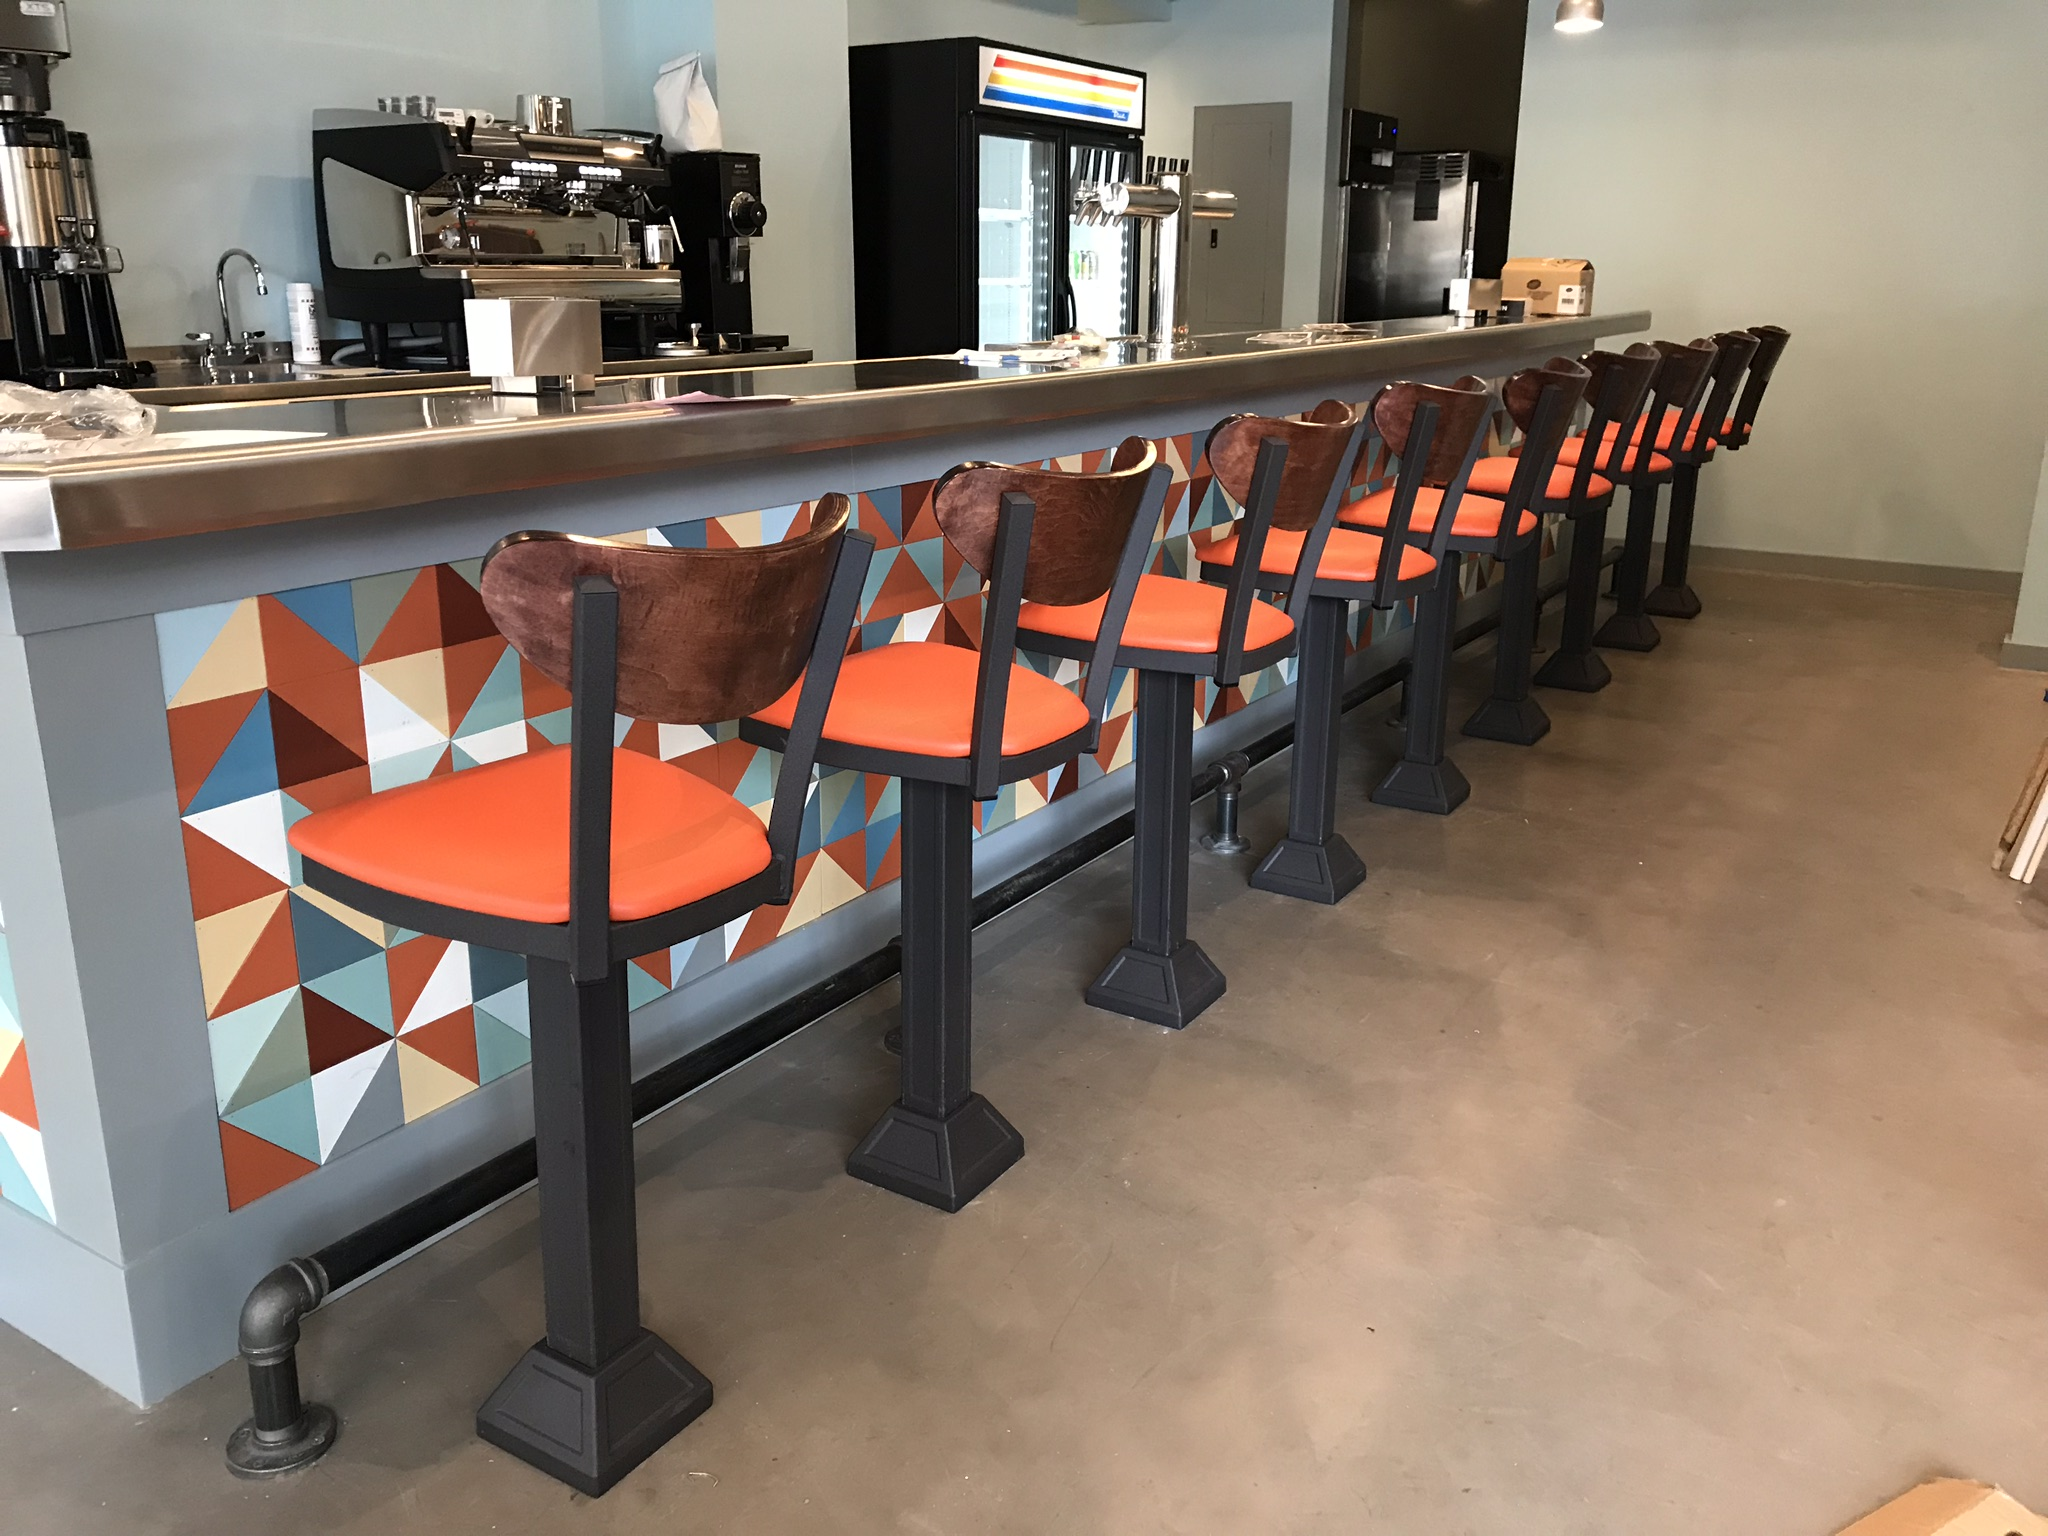 Trevett was so glad when the FUN colors started appearing. And I loved seeing the barstools installed.